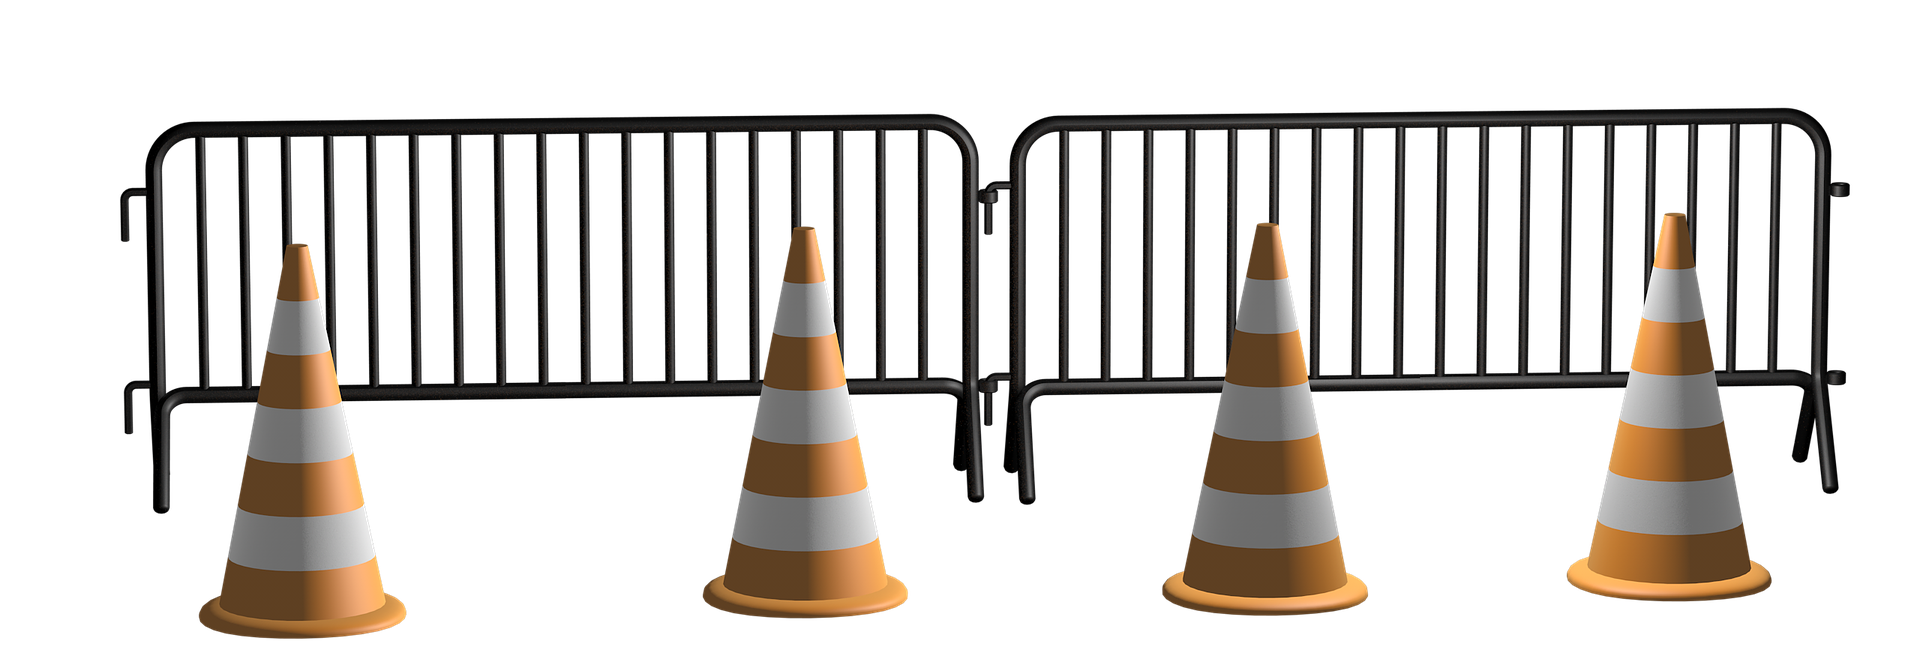 A metal barrier fence with four orange cones in front of it.